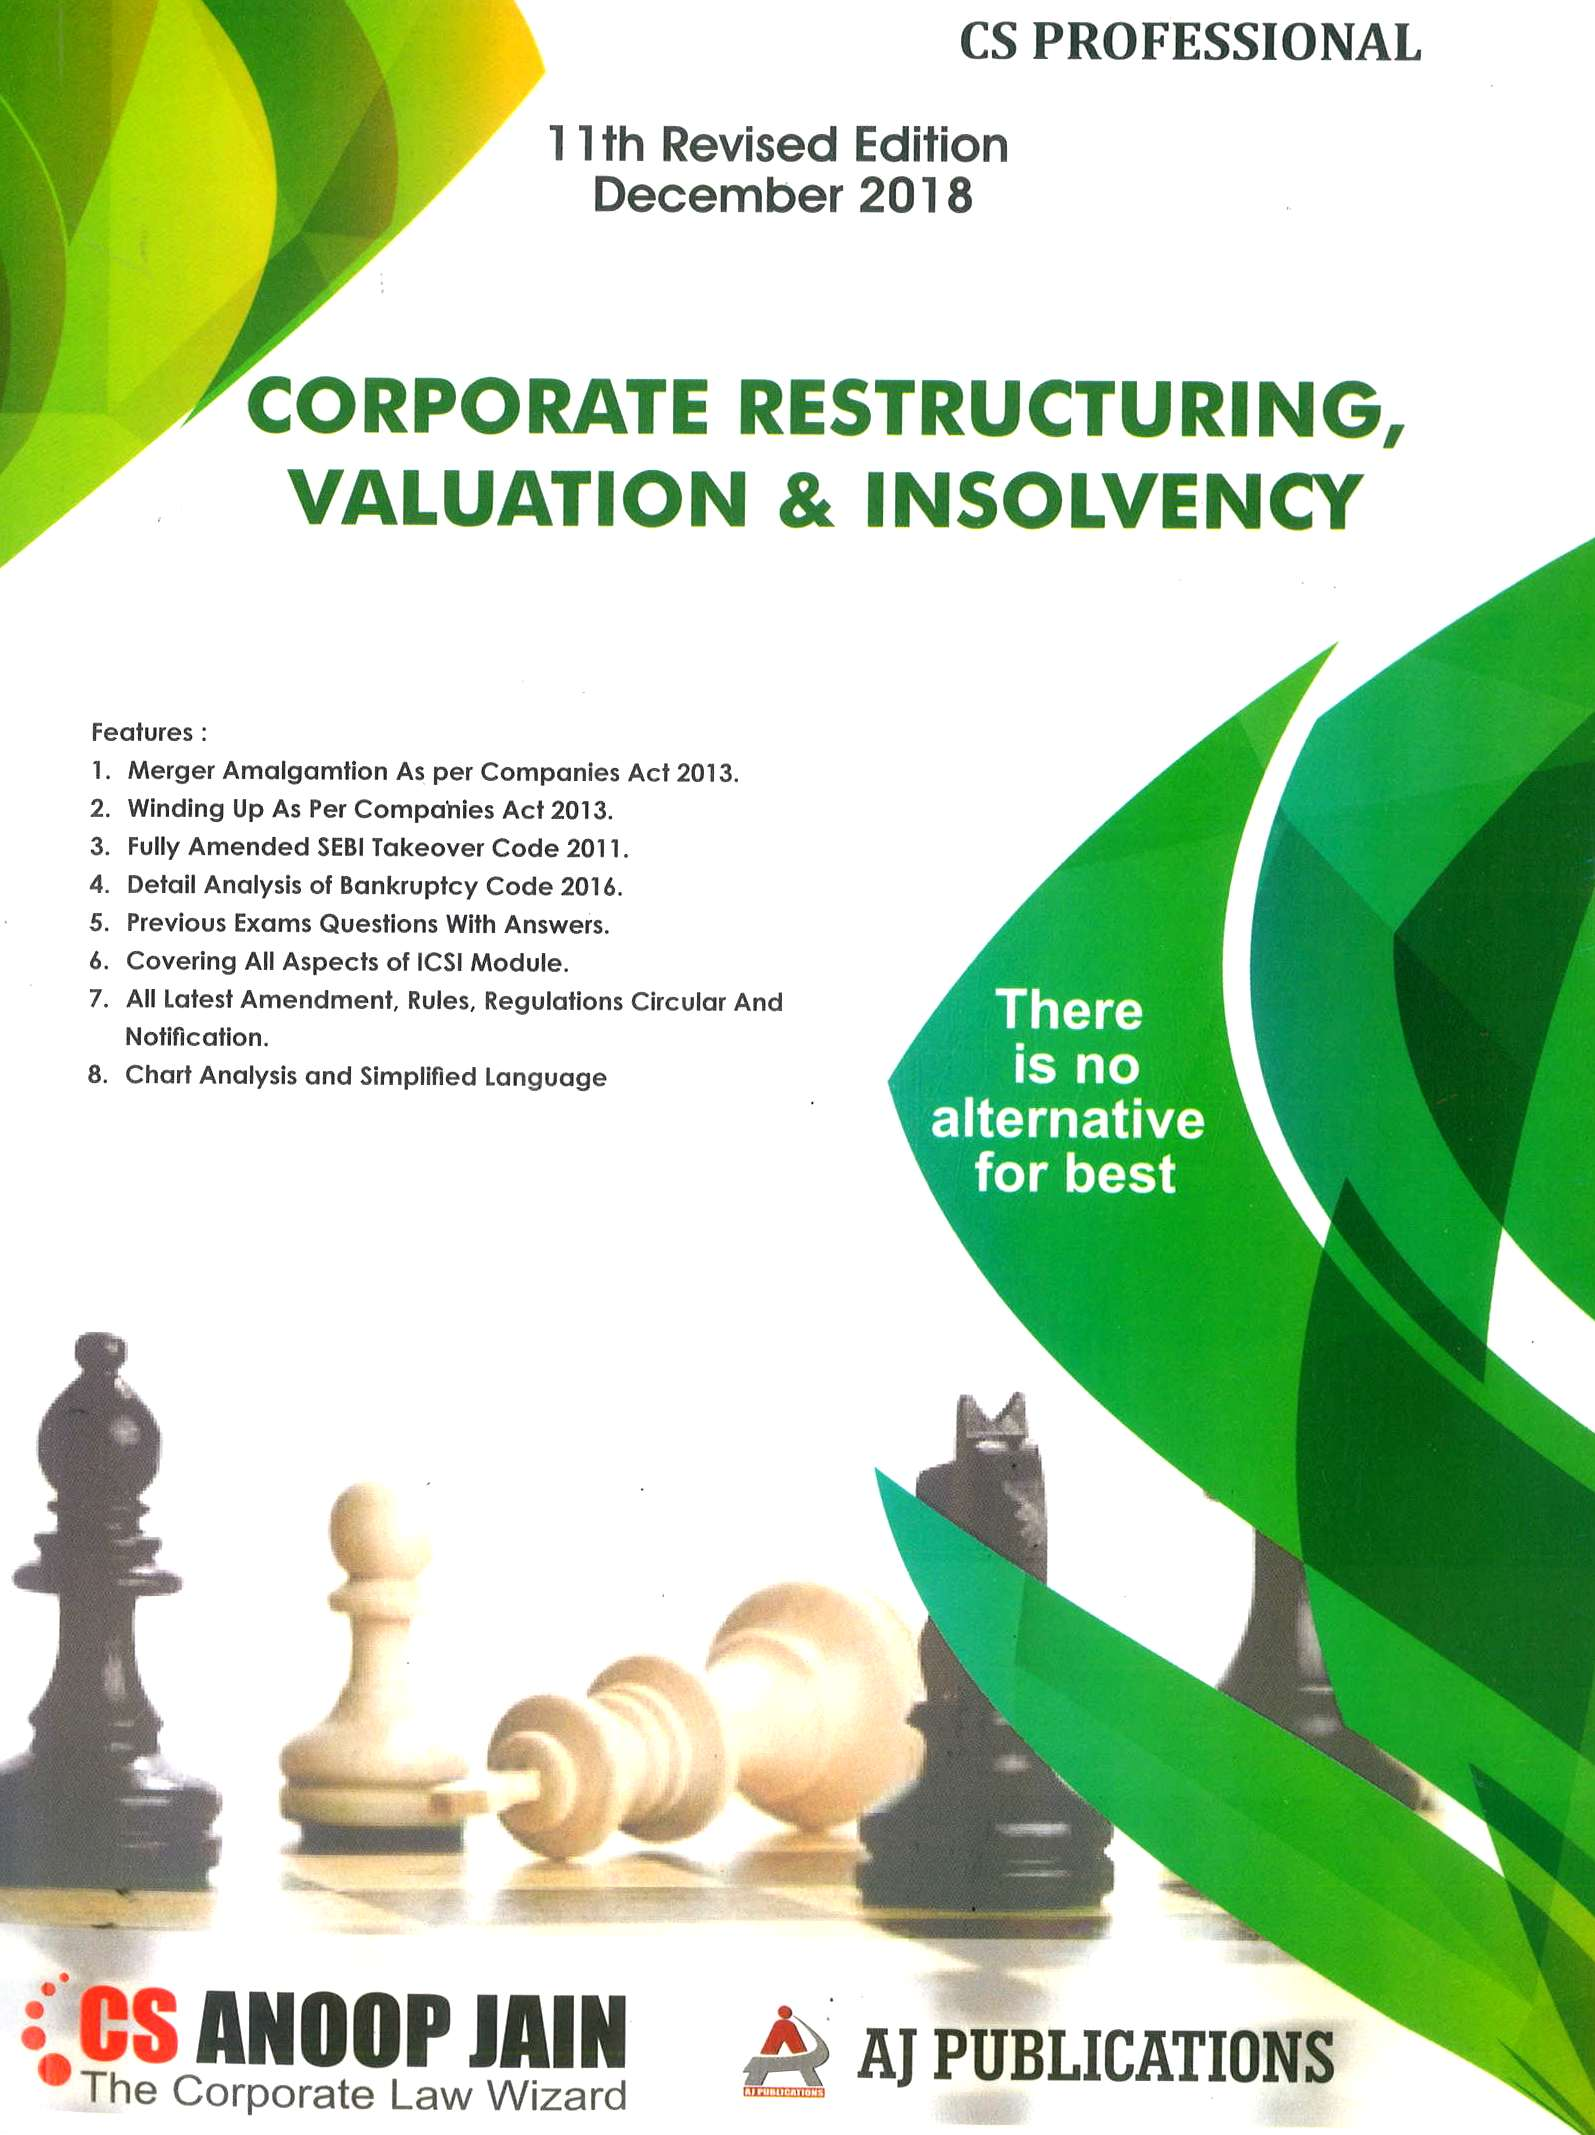 Corporate Restructuring, Valuation and Insolvency for CS Professional by CS Anoop Jain (AJ Publishing) for Dec 2018 examination 11th Revised Edition 2018